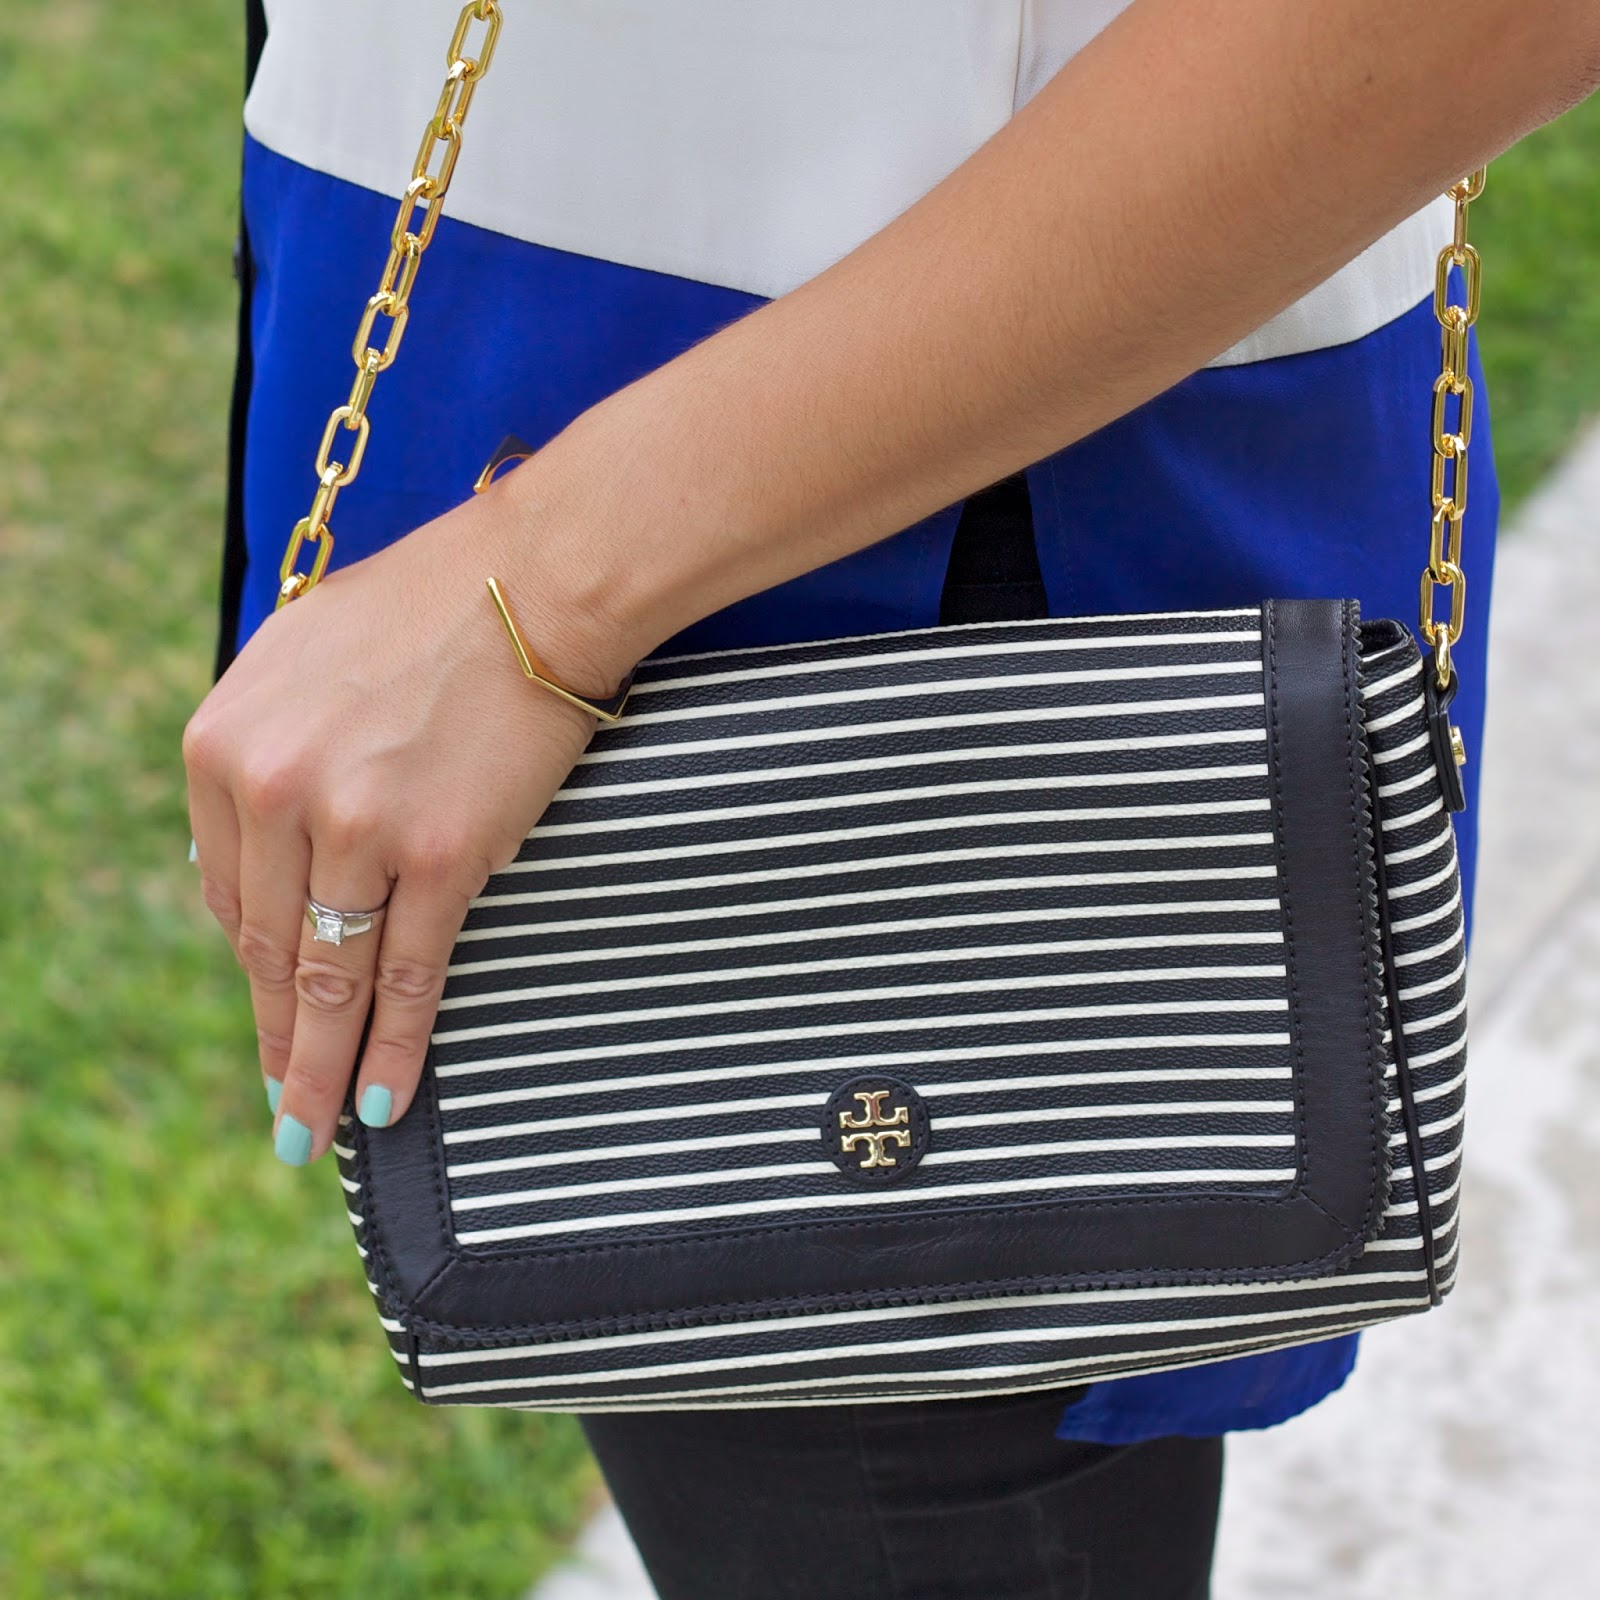 Striped Tory Burch handbag, Striped Tory Burch purse, Gorjana bangle, Gorjana blogger